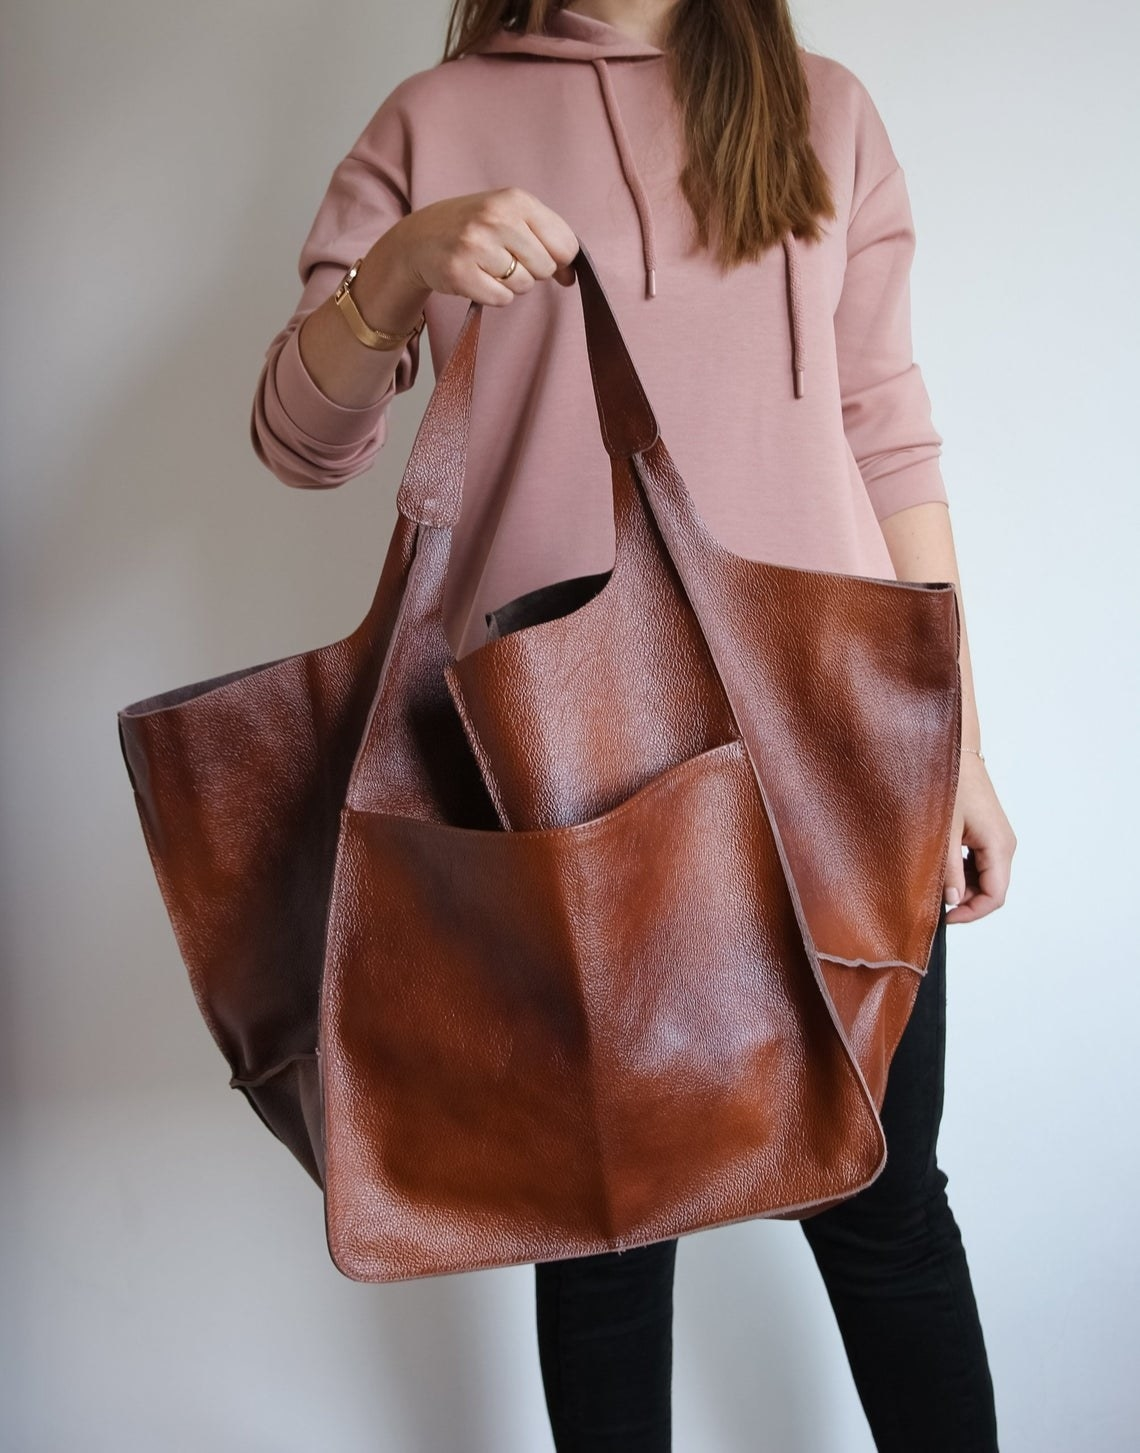 A model holding up the tote bag